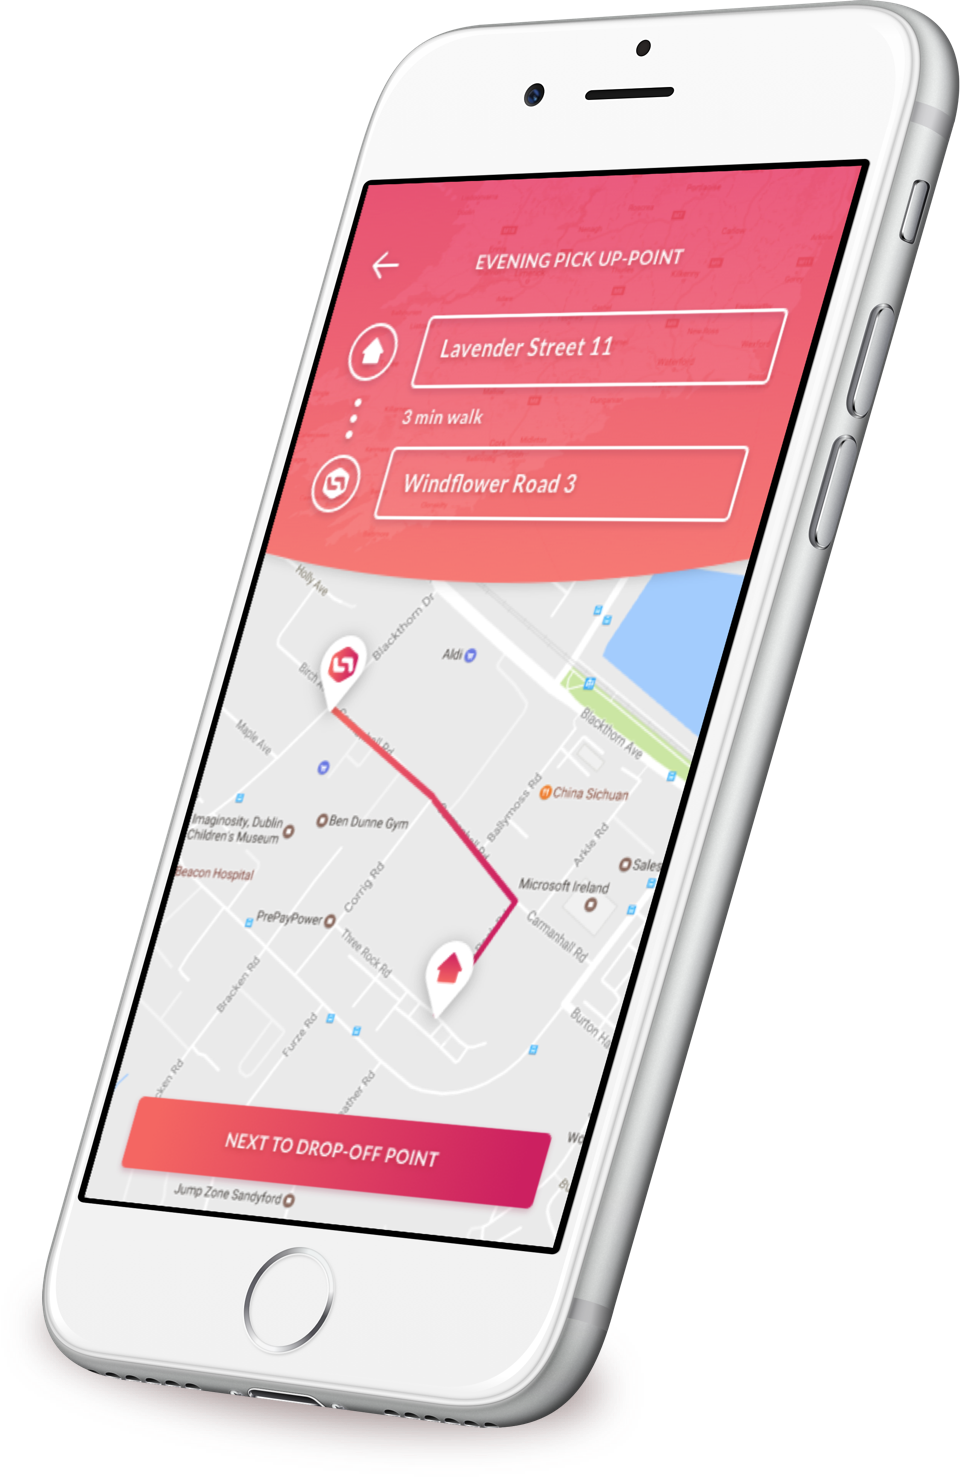 Passenger Bus App Walk Route - Web Android iOS